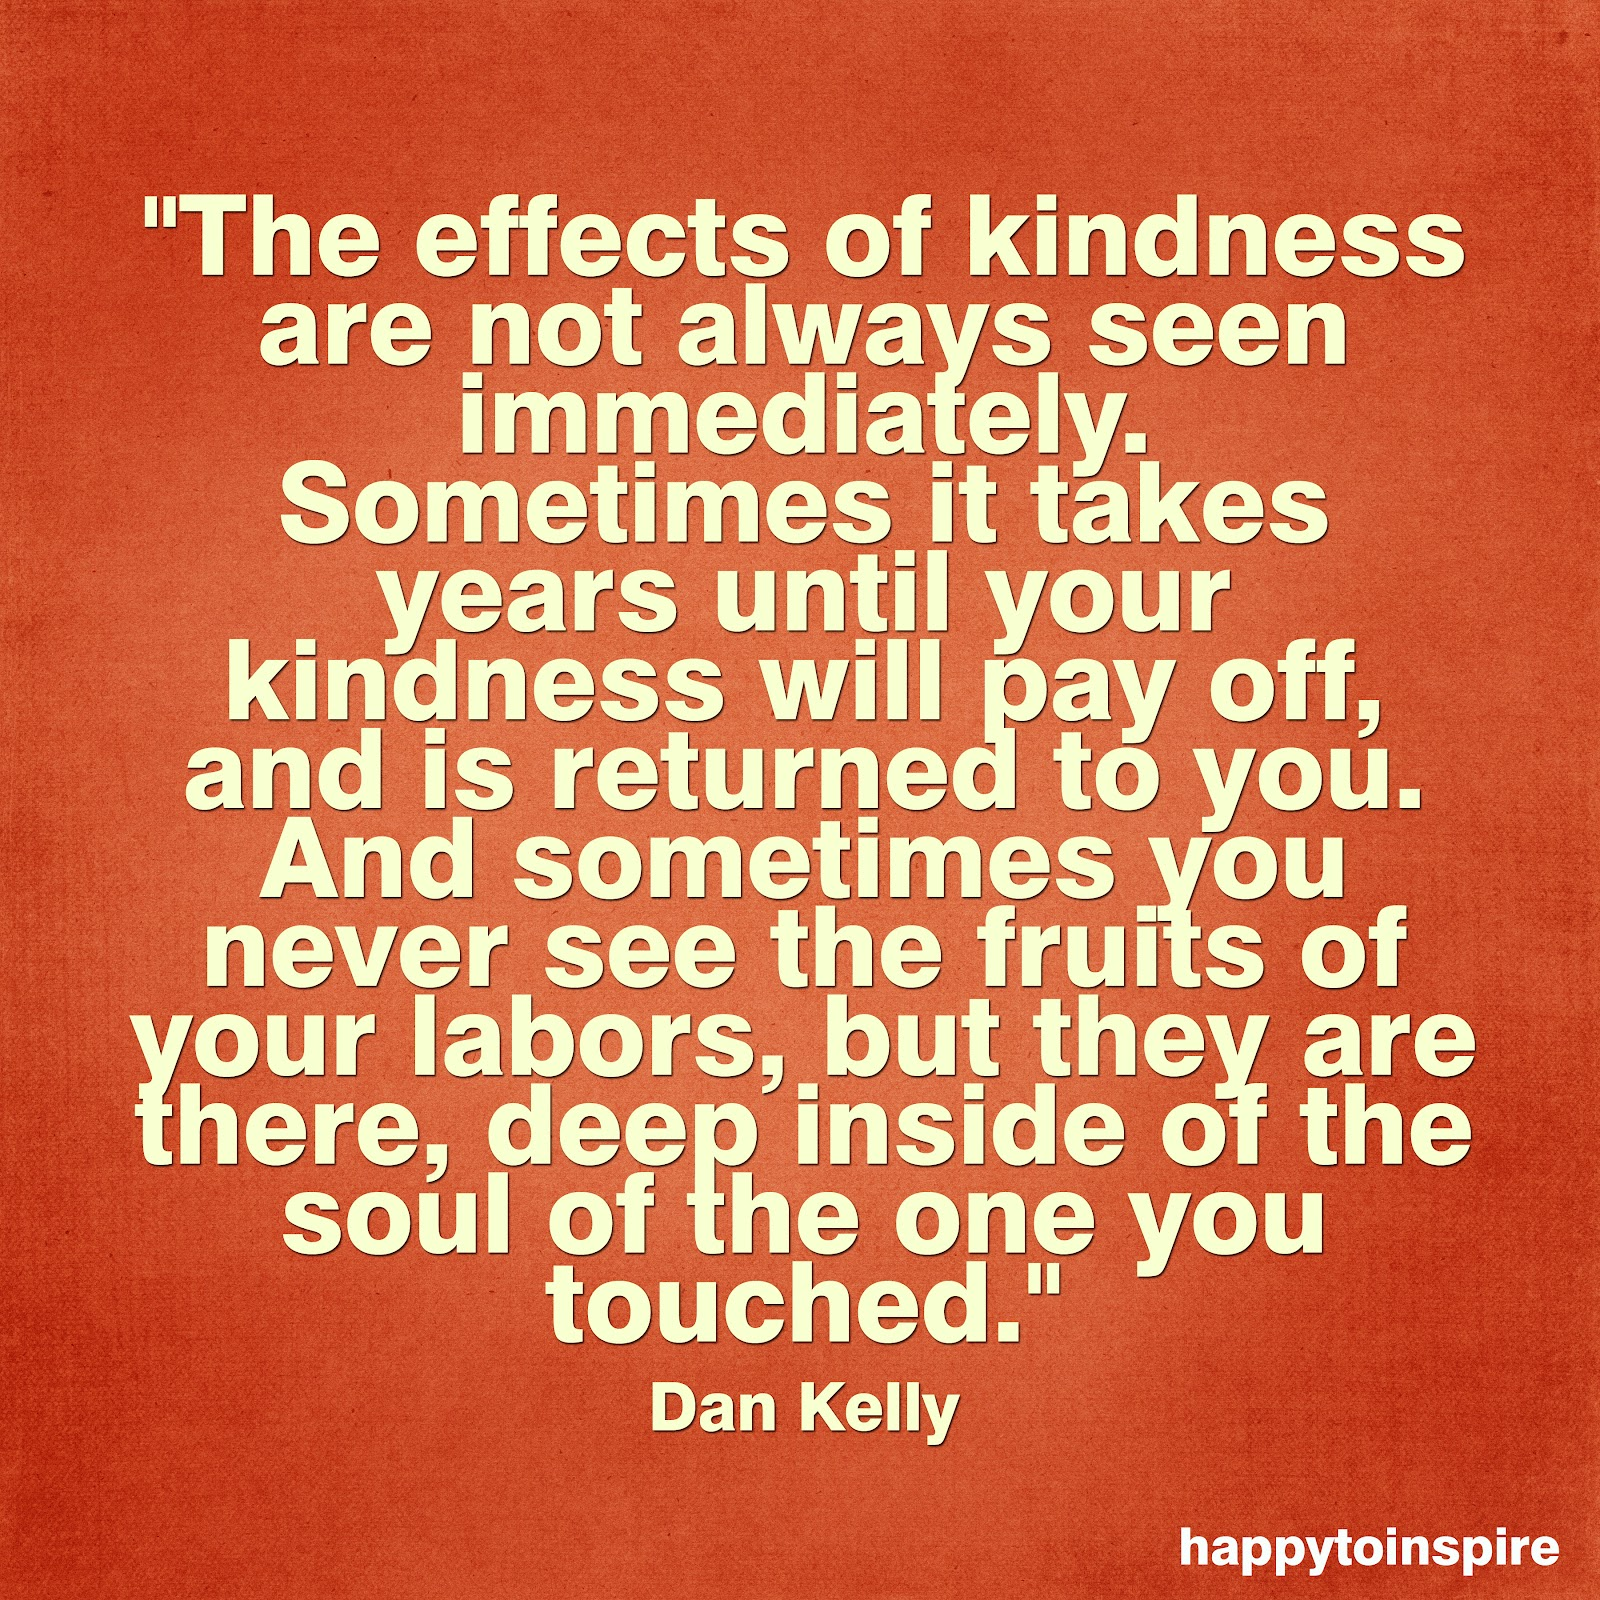 Inspirational Quotes For Kindness Day: Happy To Inspire: June 2012